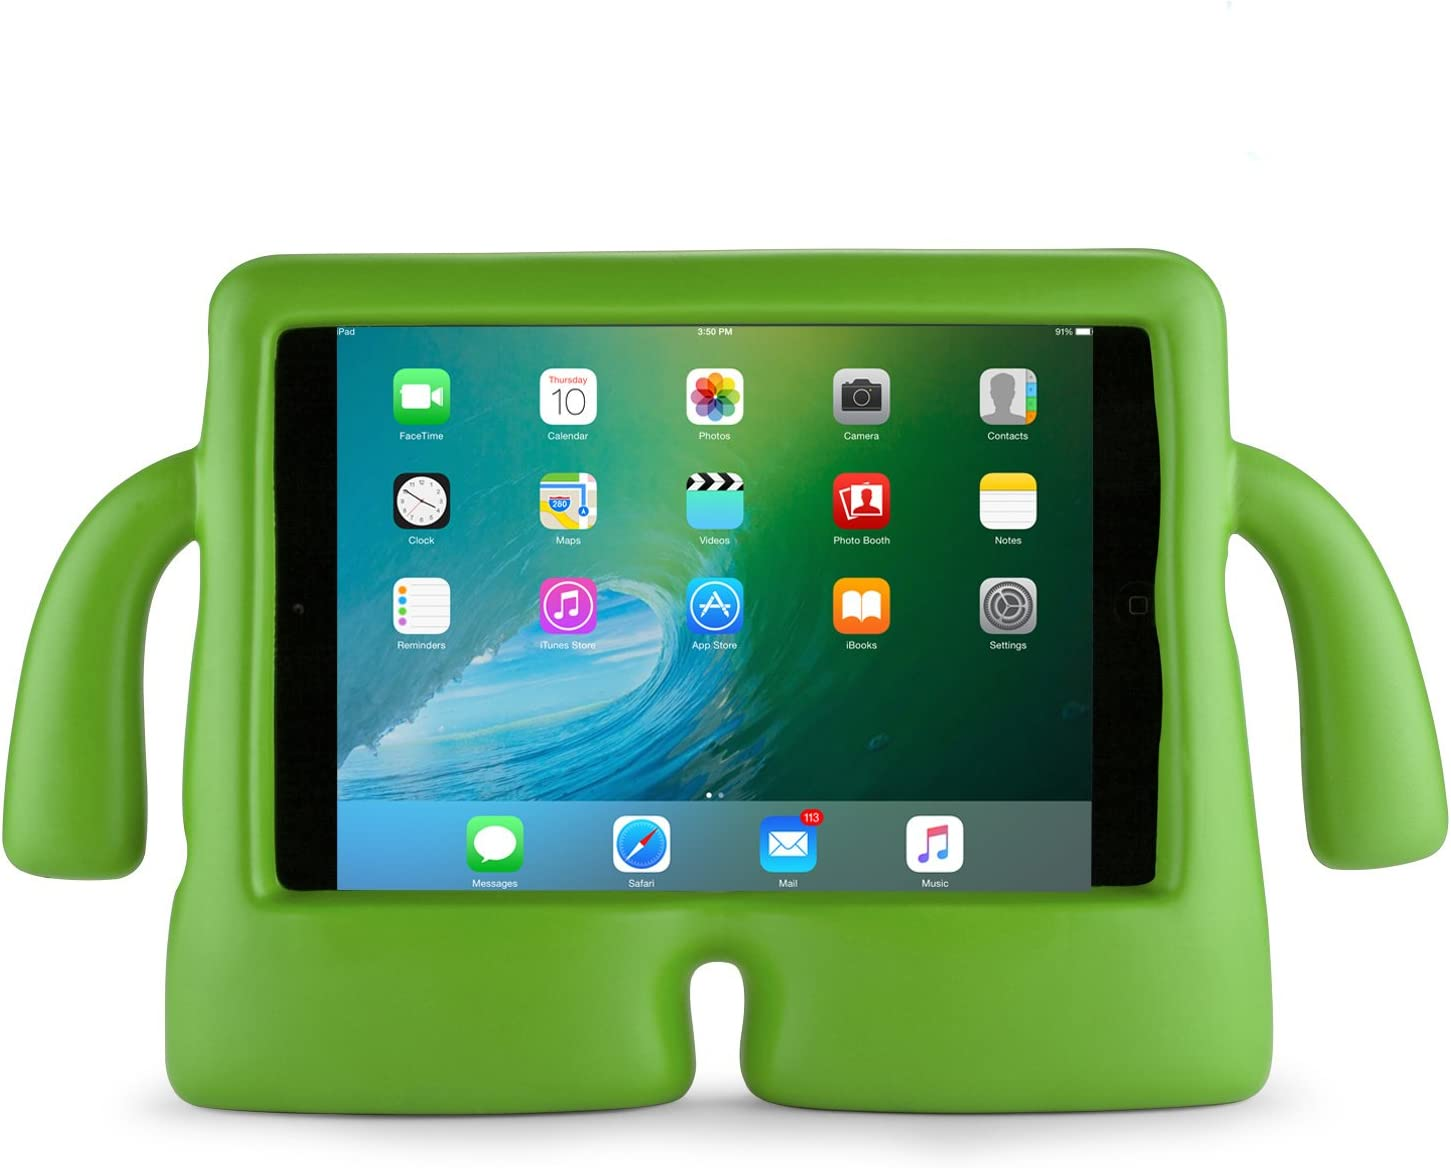 Speck Products 92840-1516 iGuy Freestanding Protective Case for iPad Mini 2/3/4, Lime Green, 25-Pack Business Packaging